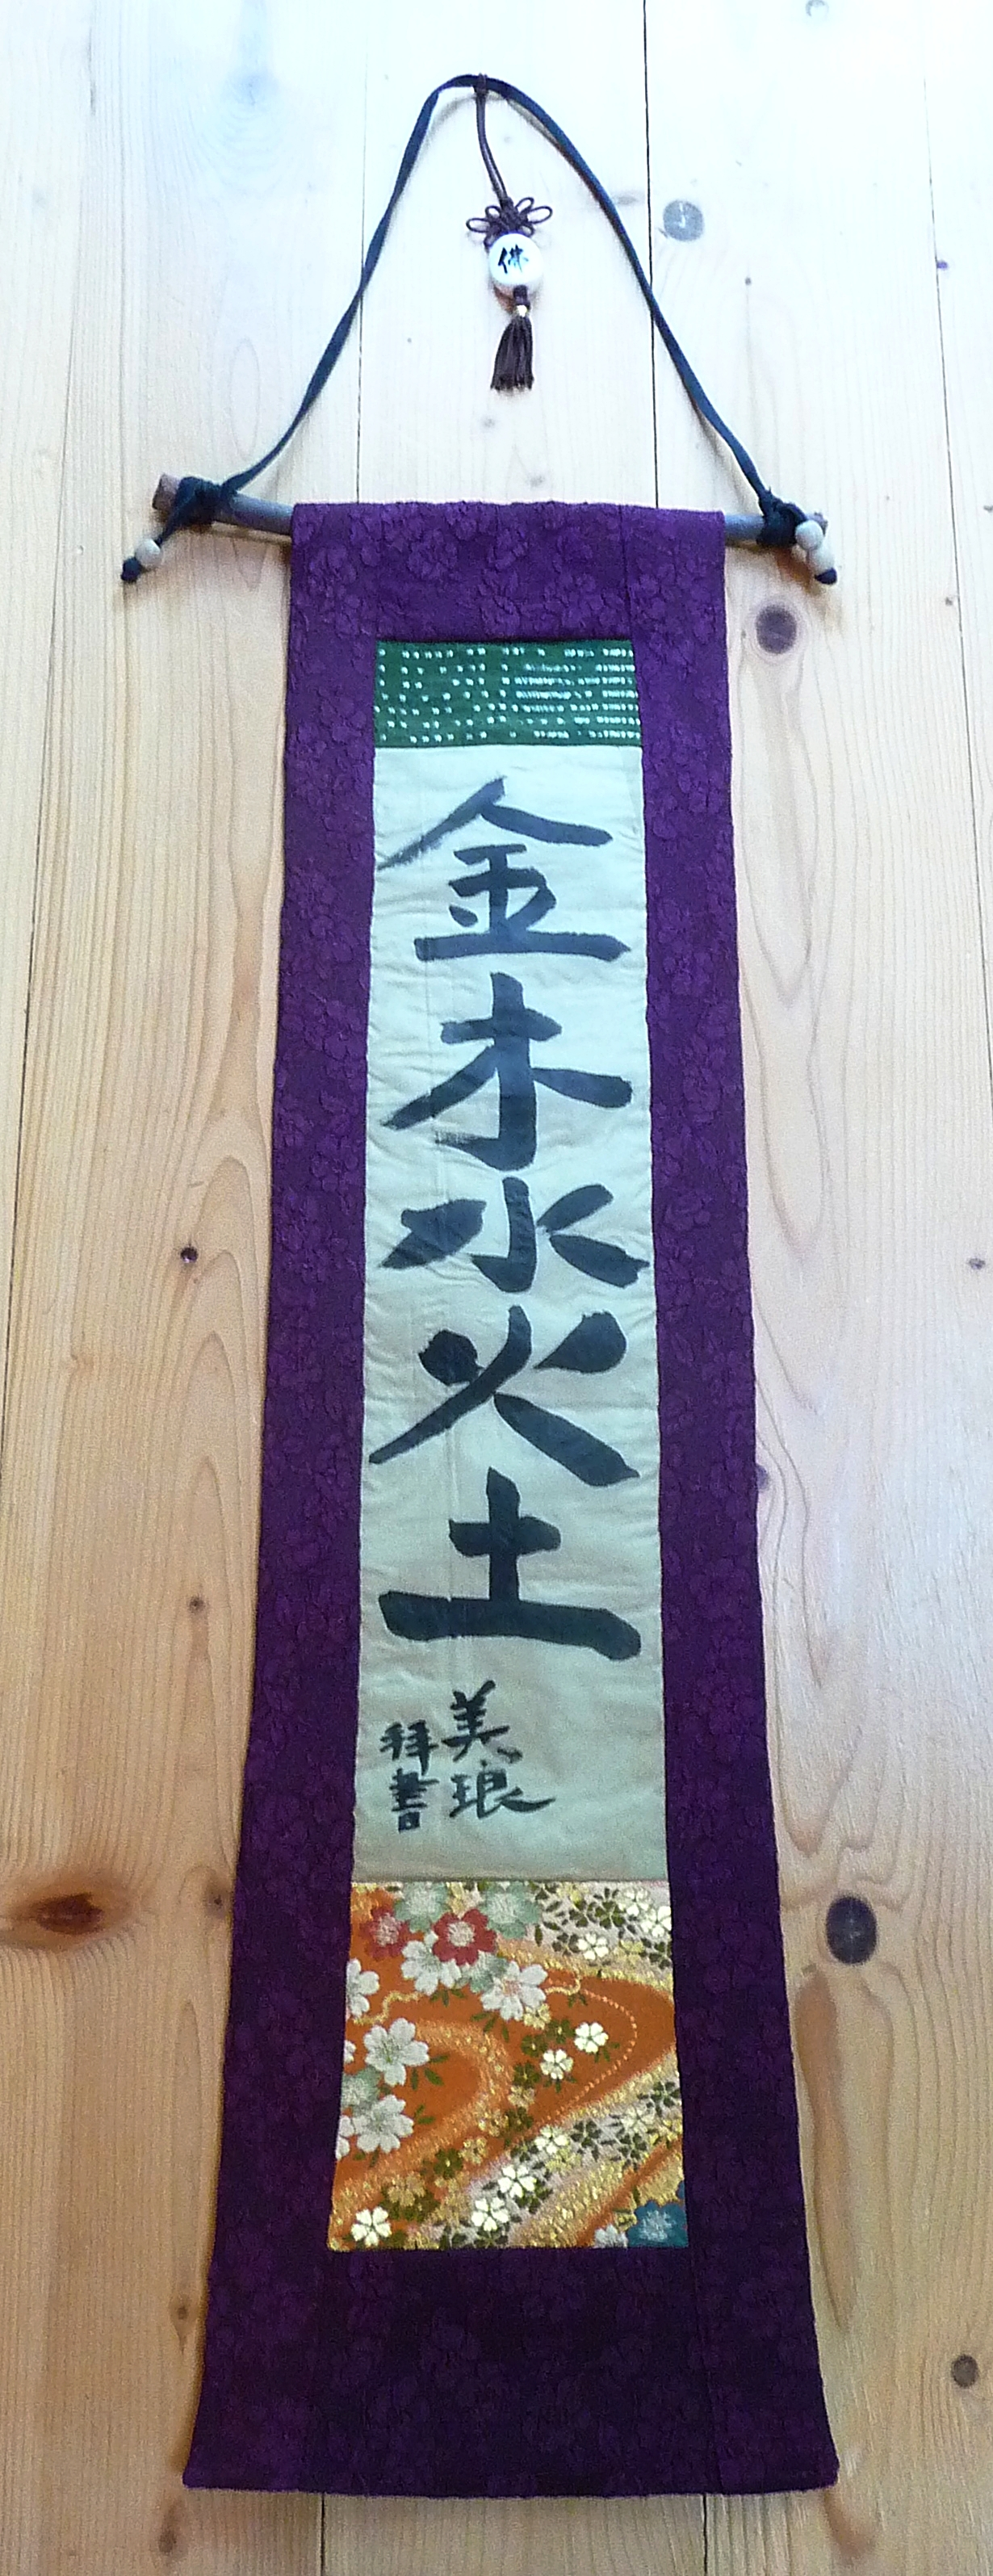 Calligraphy framed in purple silk, accented by sari fabric and Japanese brocade